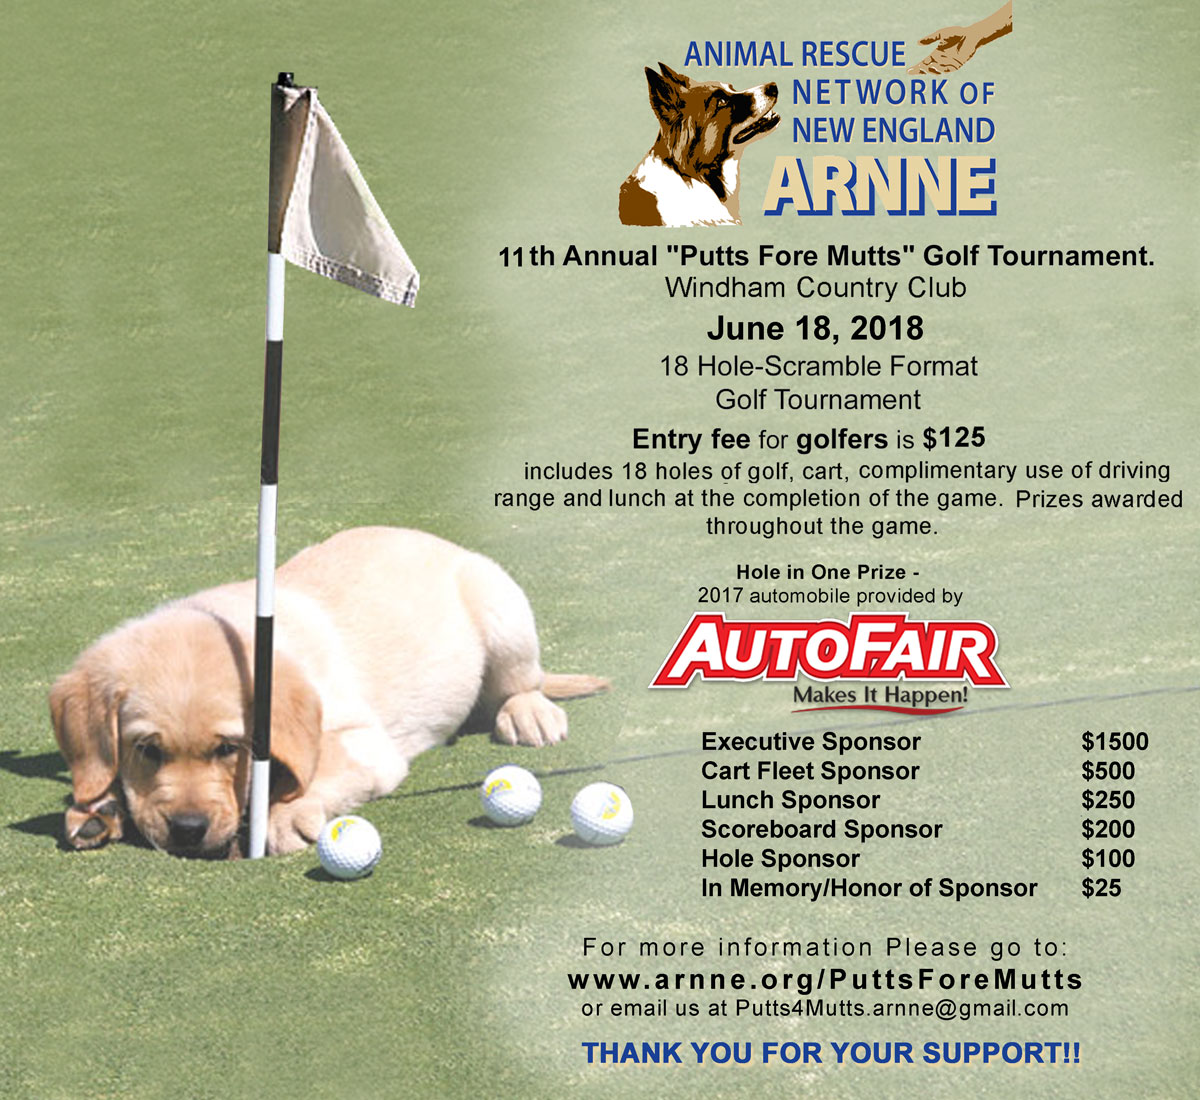 Putts Fore Mutts 2018